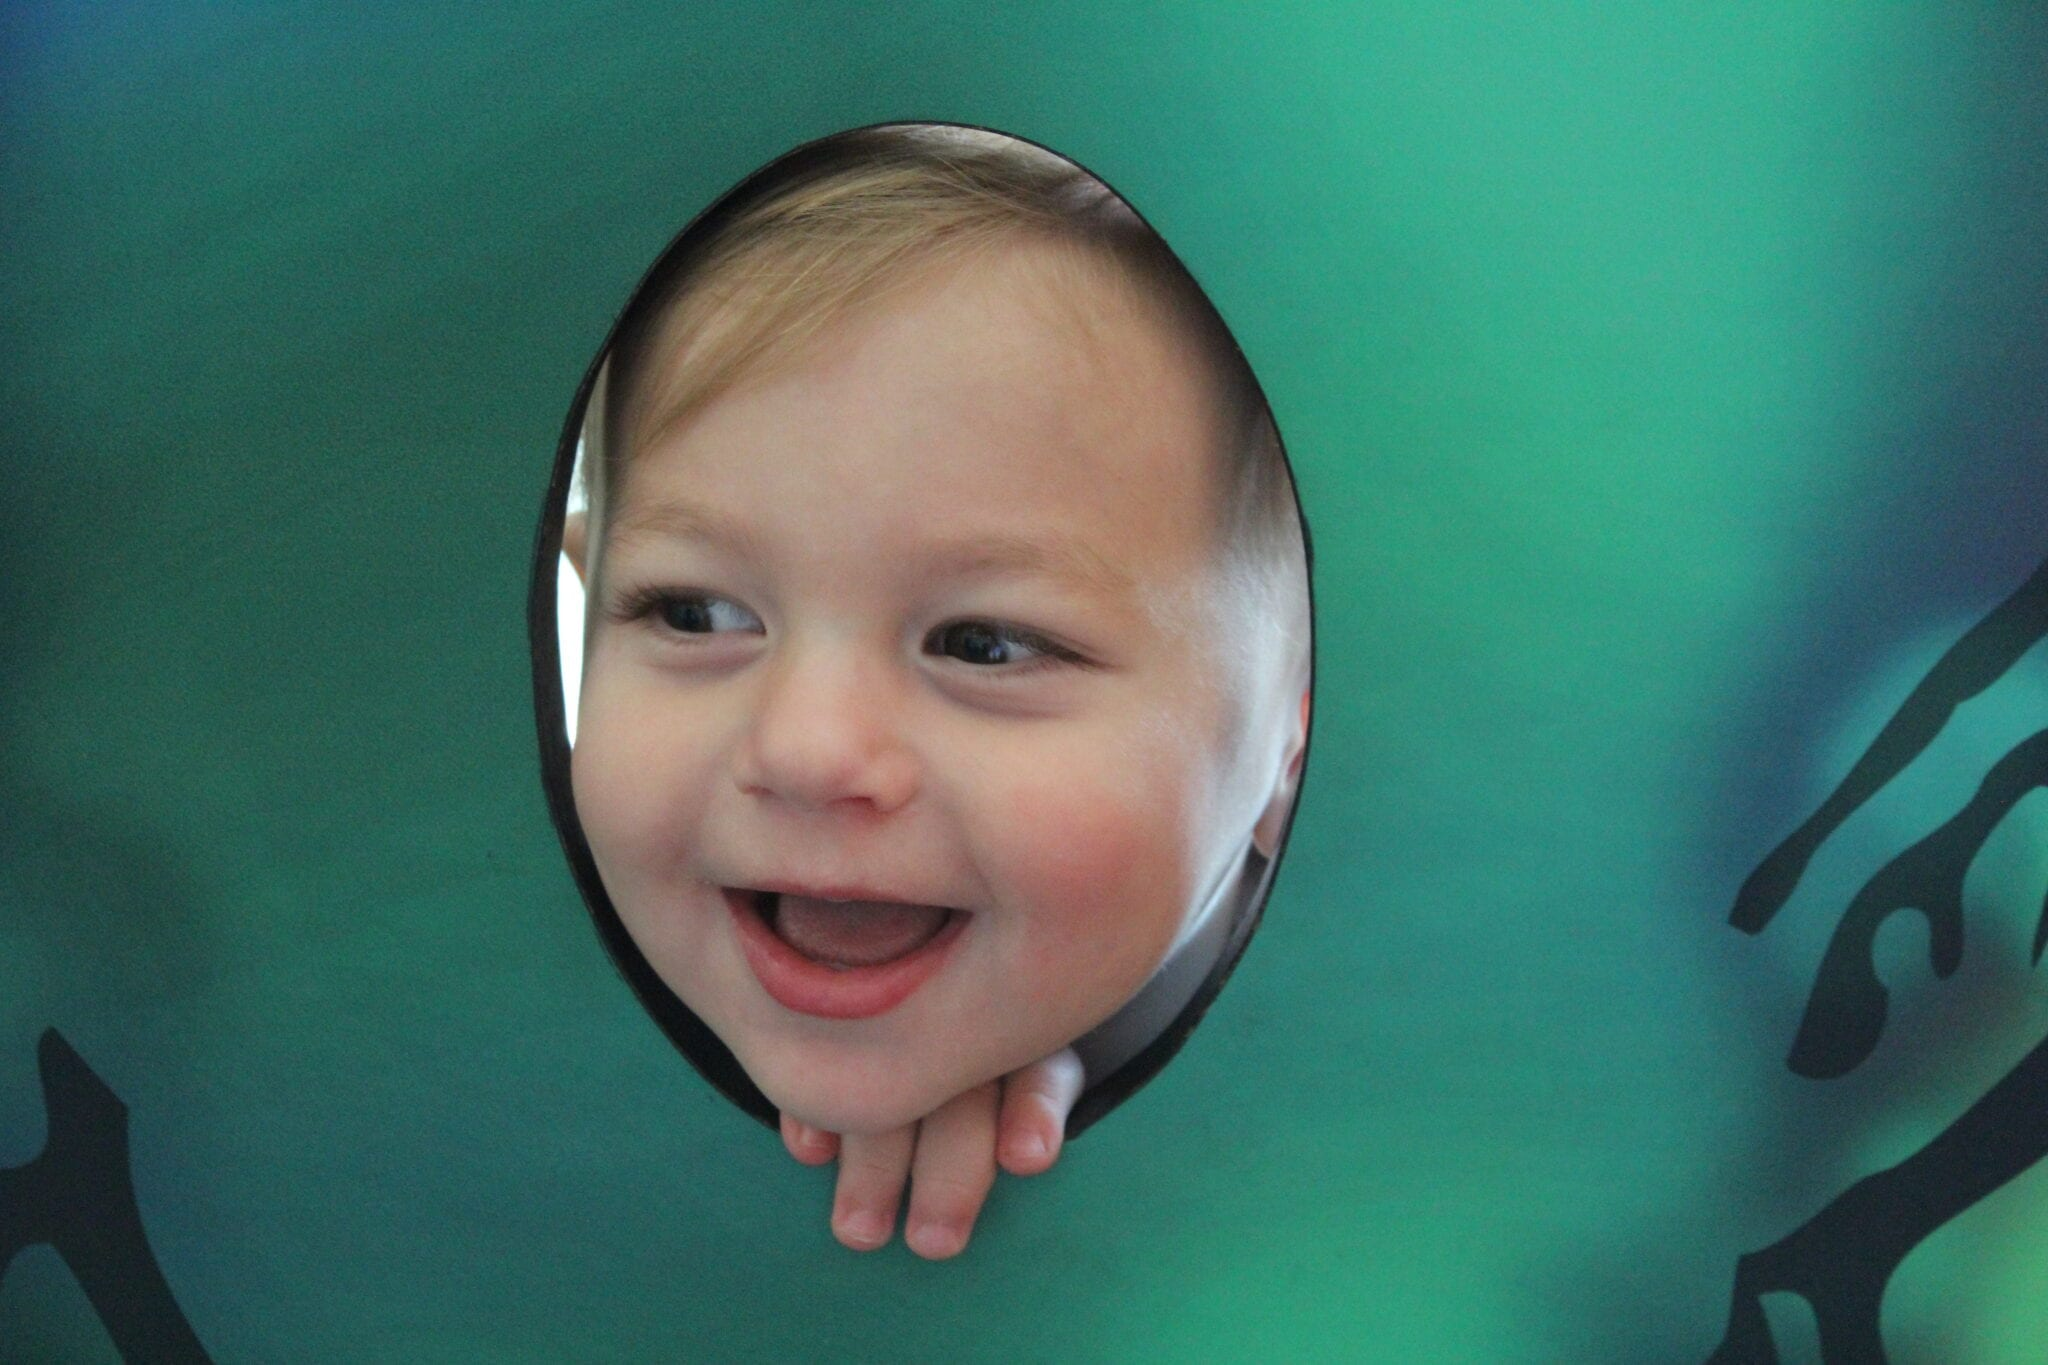 Enjoying Memories of My Kids by Taking Better Photos- 5 Easy Tips I Just Learned